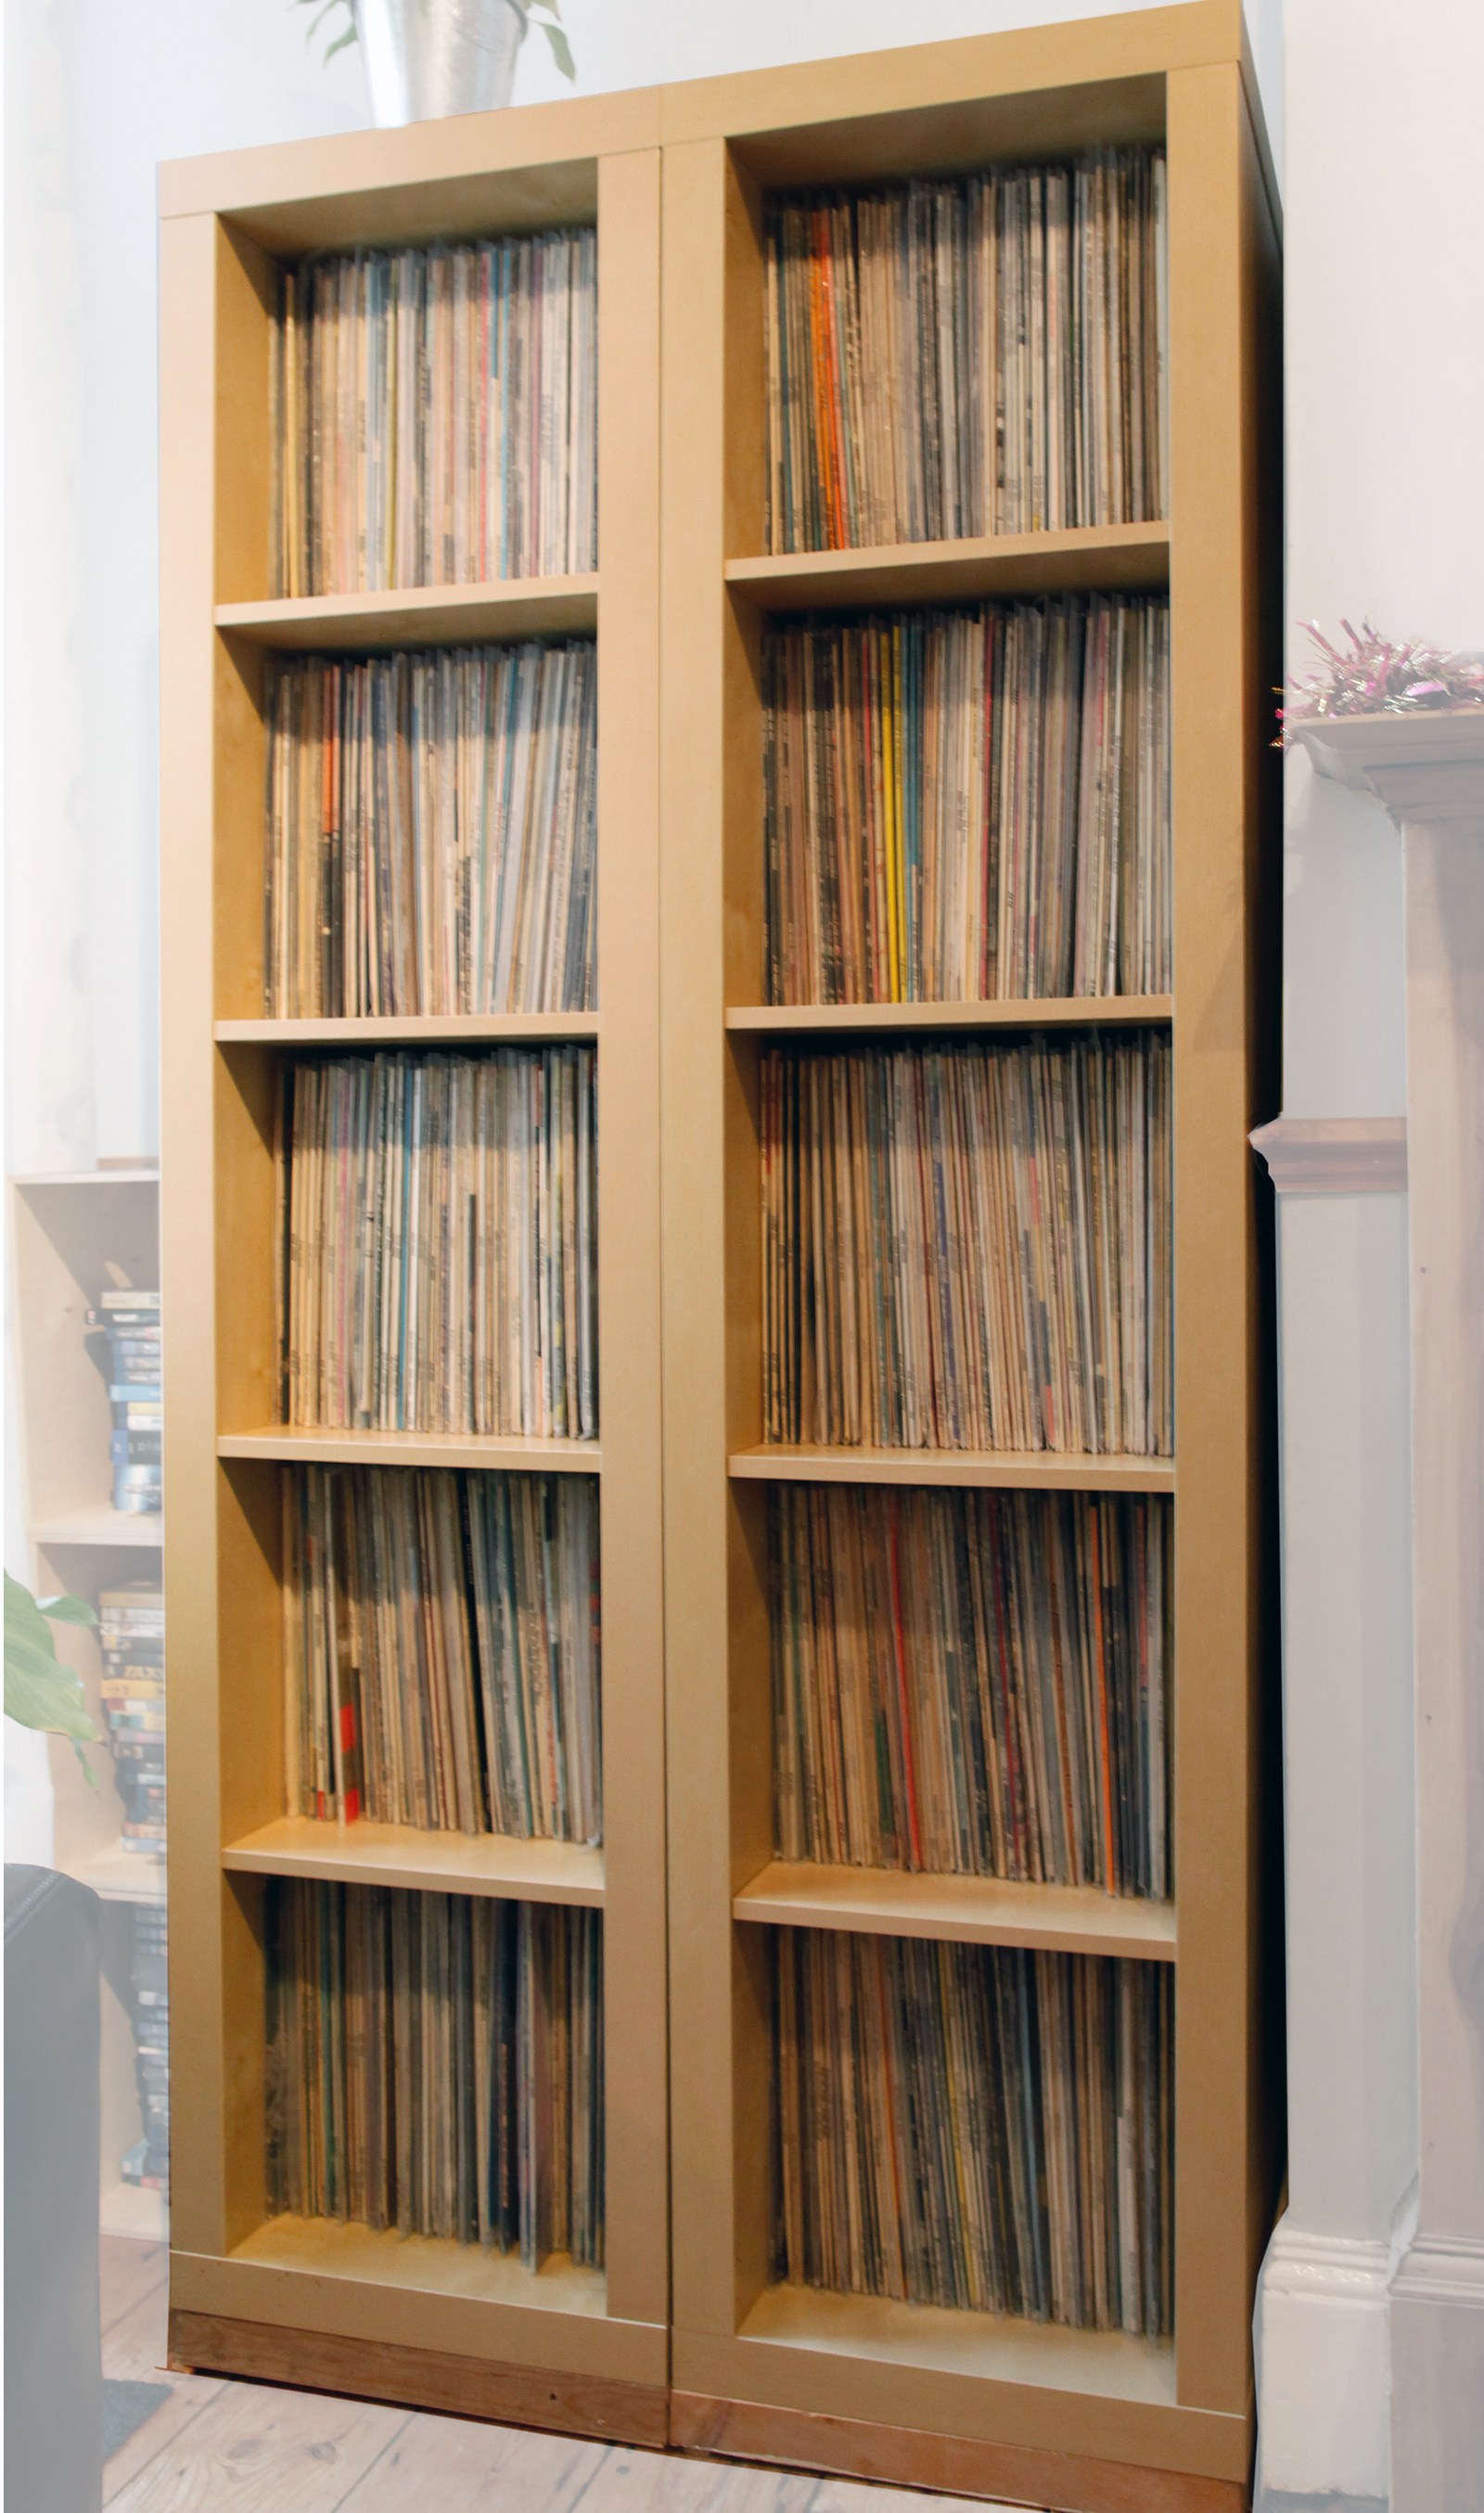 Valentine special ikea loves vinyl londonjazzcollector for Ikea lp storage